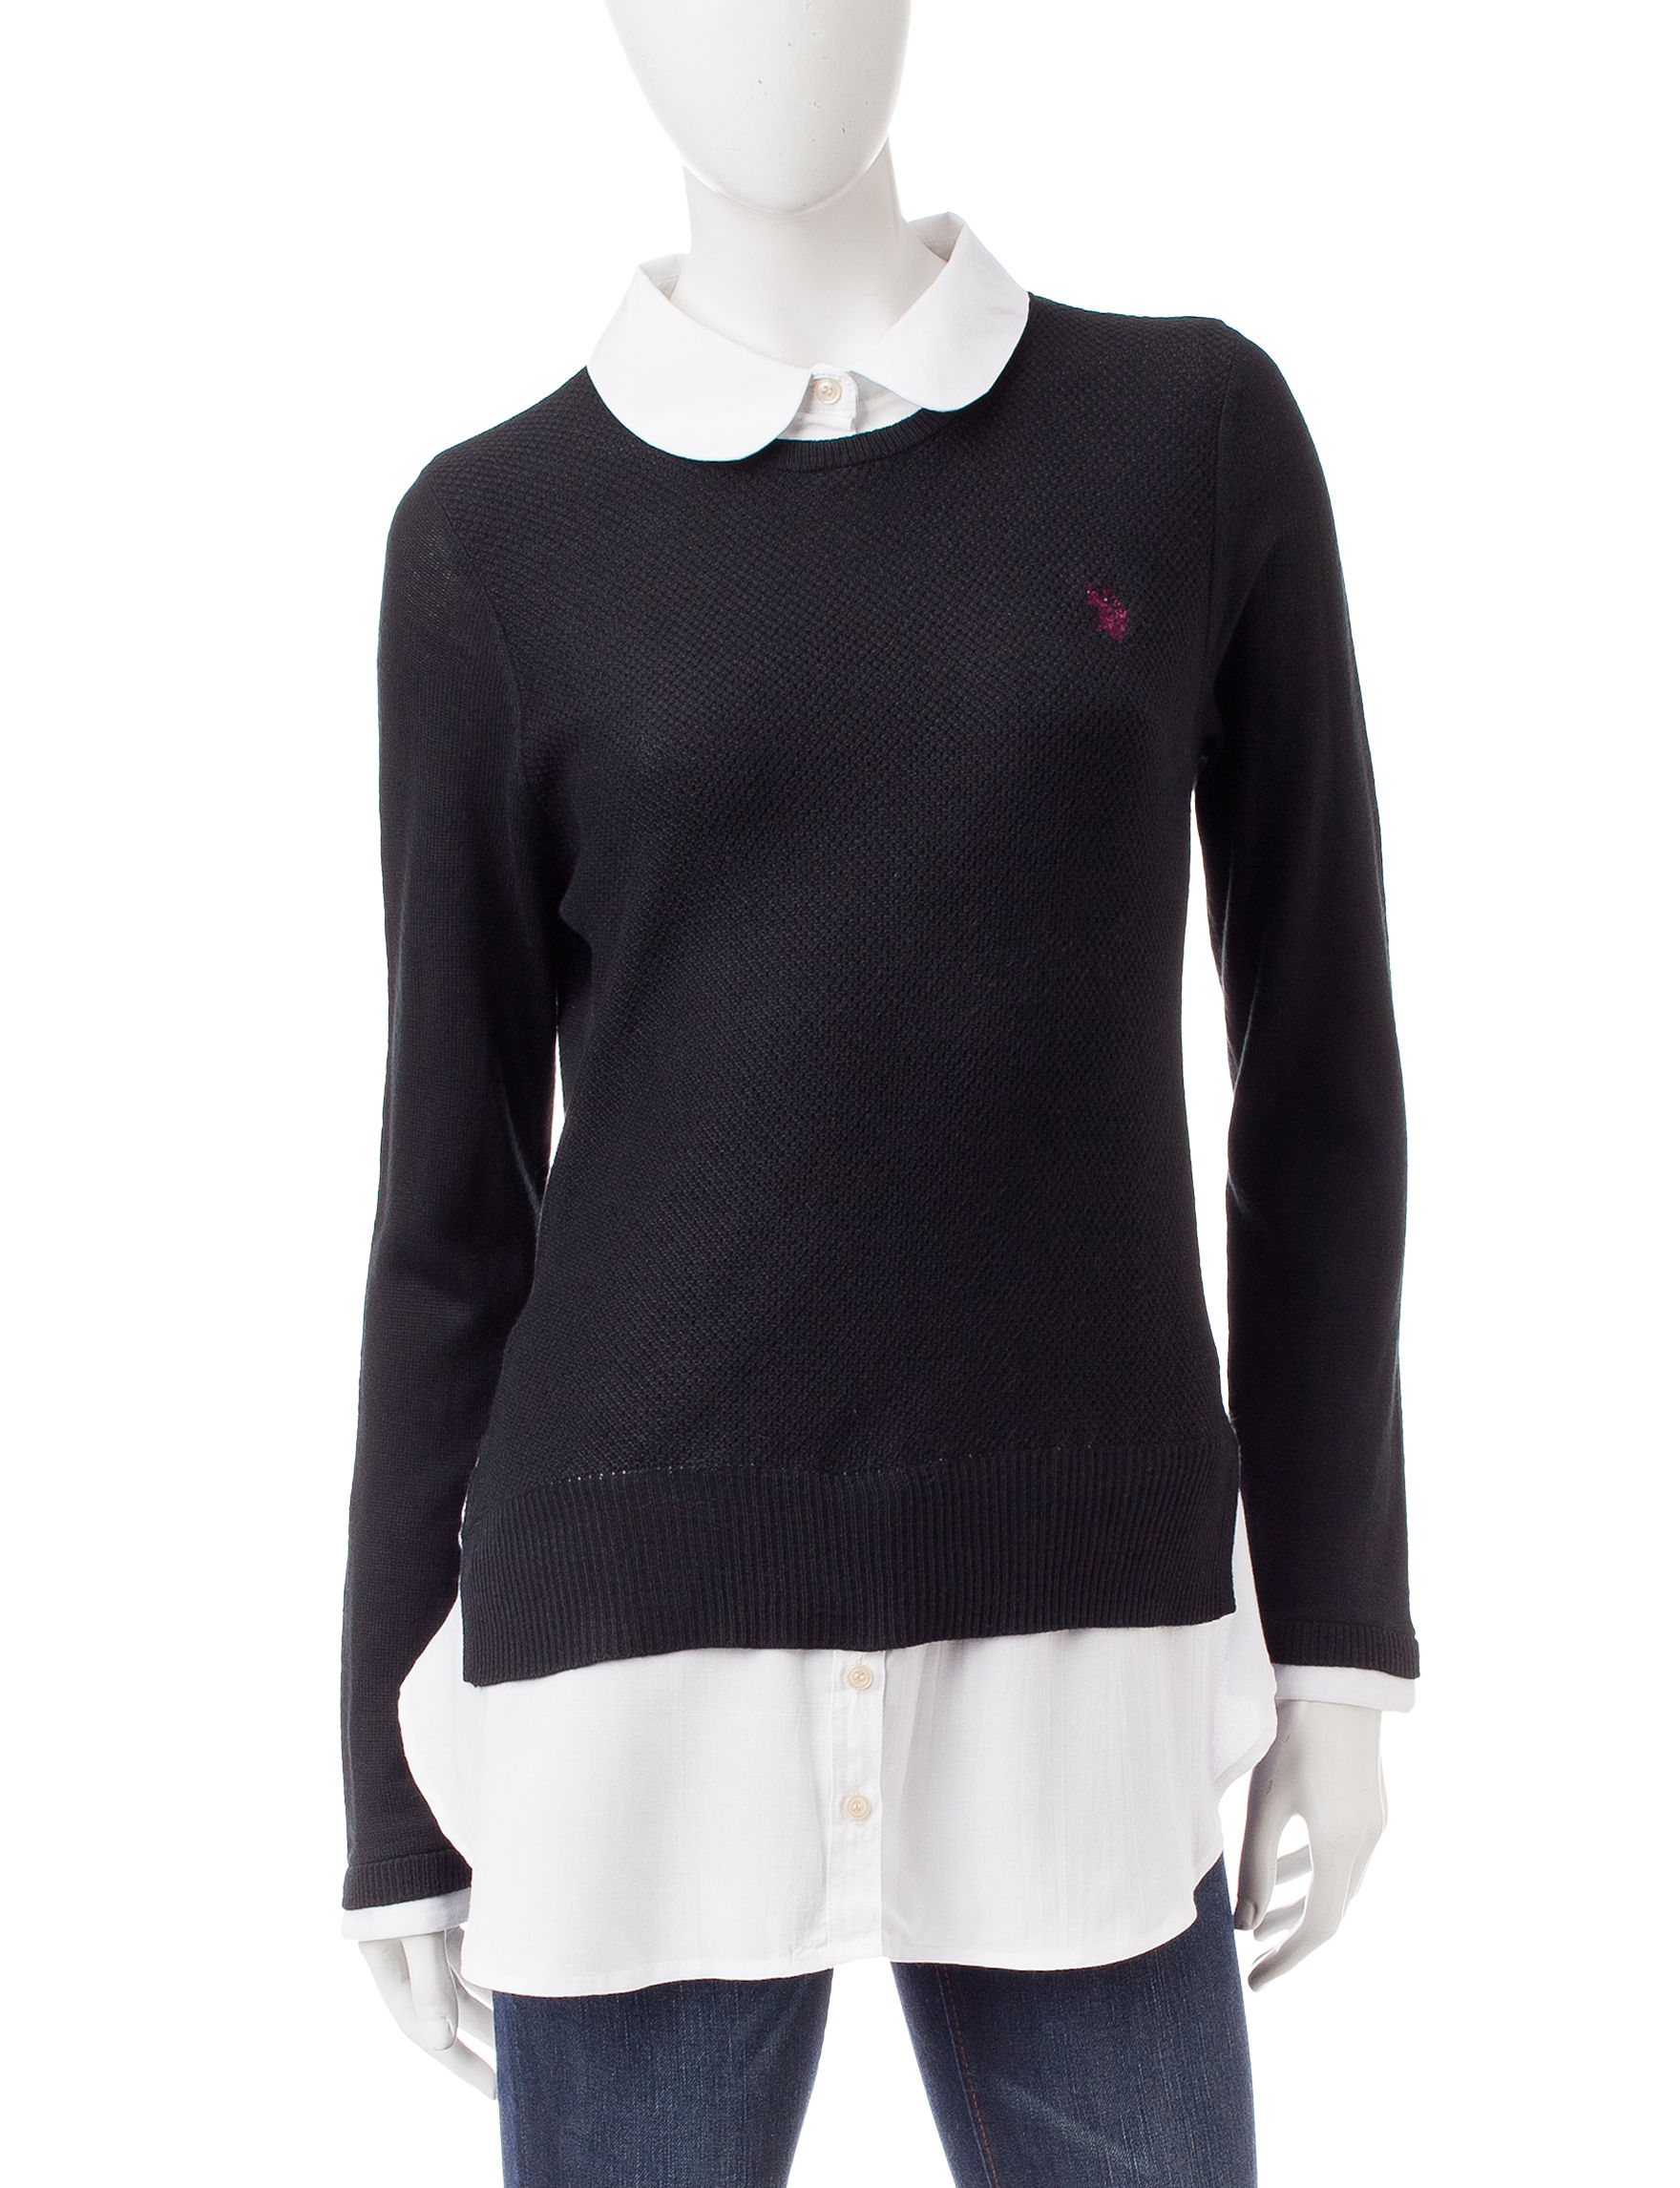 U.S. Polo Assn. Black Pull-overs